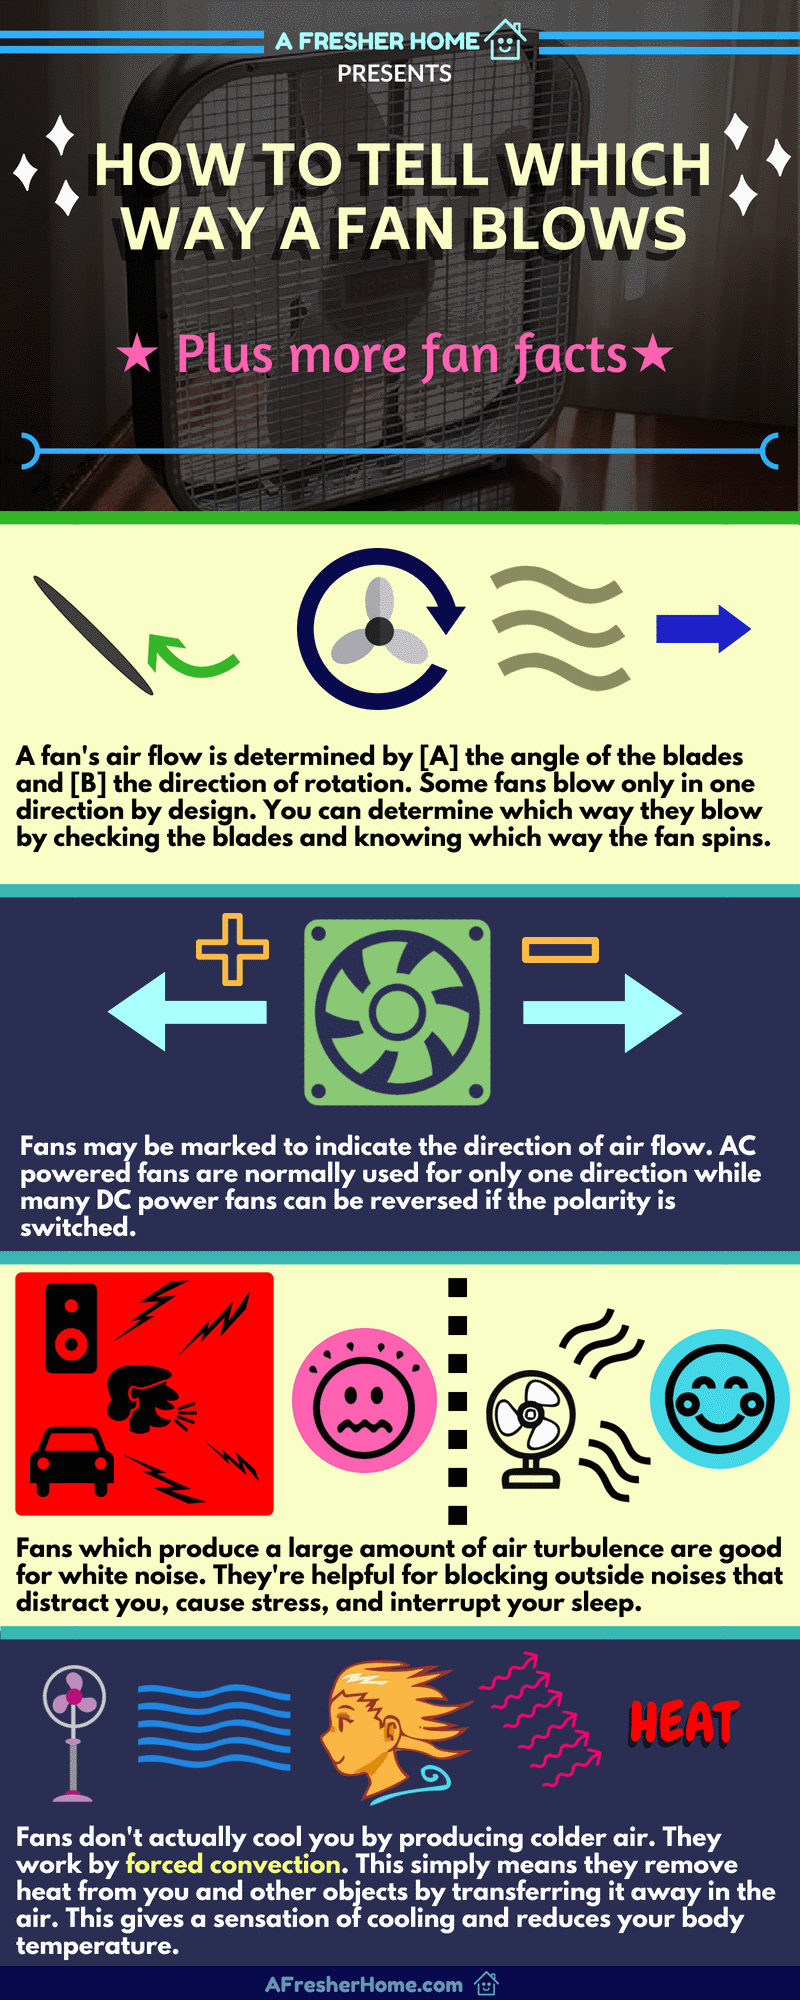 How a fan blows and fan facts infographic